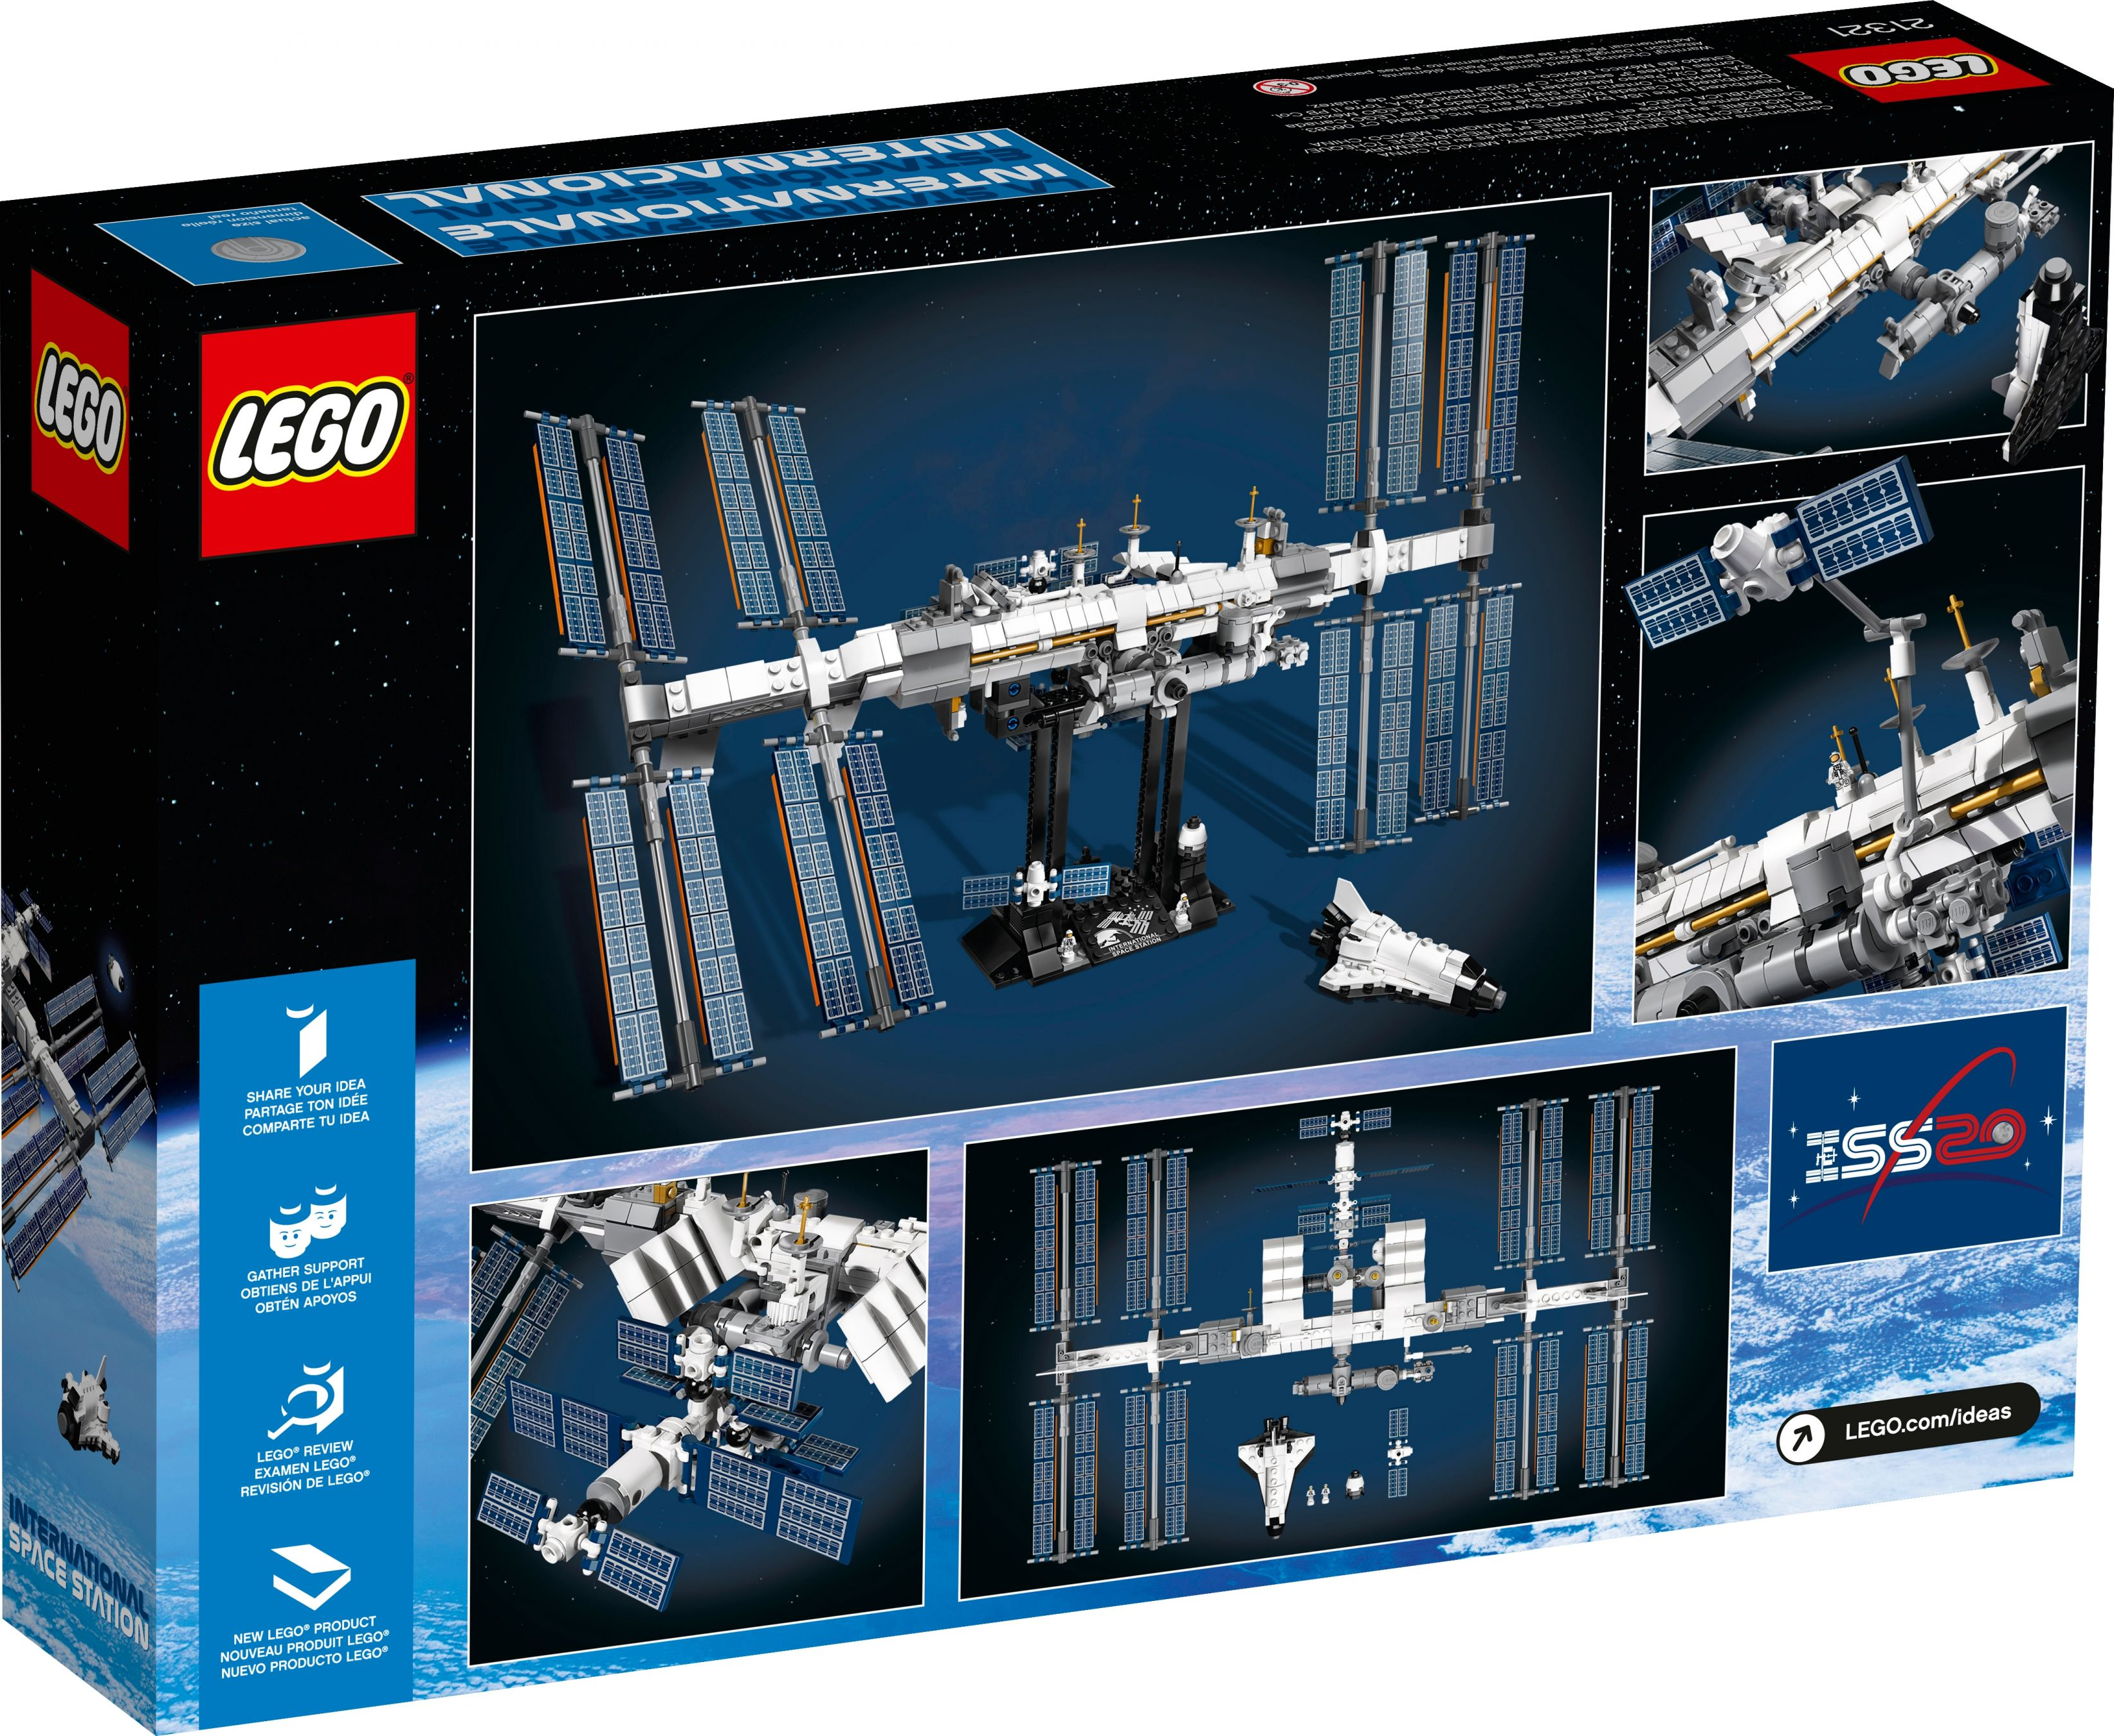 LEGO Ideas 21321 Internationale Raumstation LEGO_21321_alt8.jpg